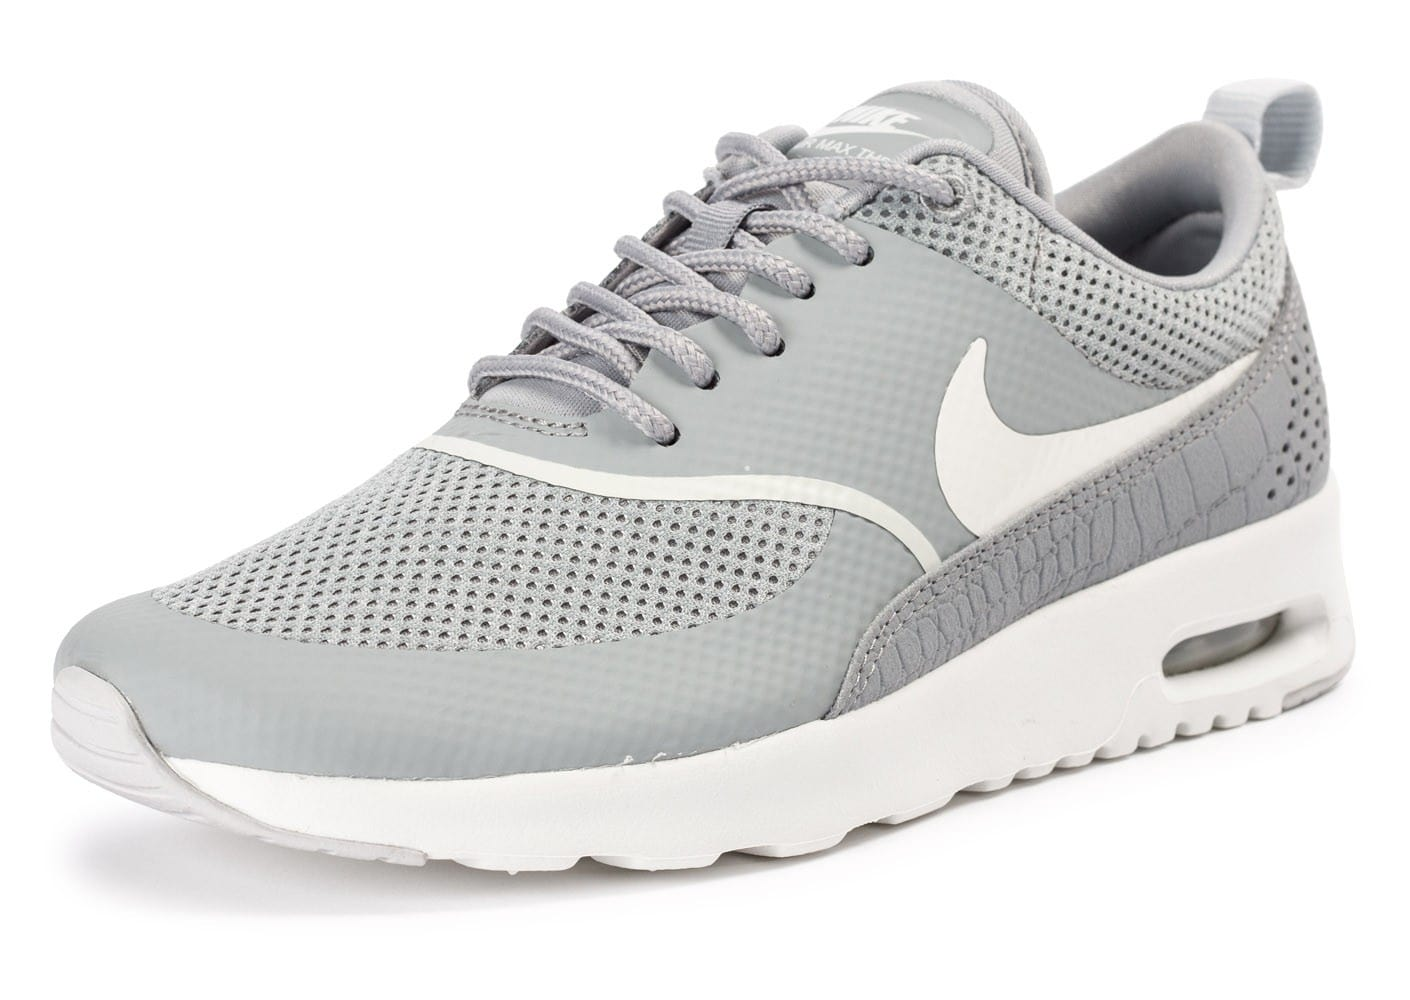 nike air max thea matte silver chaussures chaussures chausport. Black Bedroom Furniture Sets. Home Design Ideas